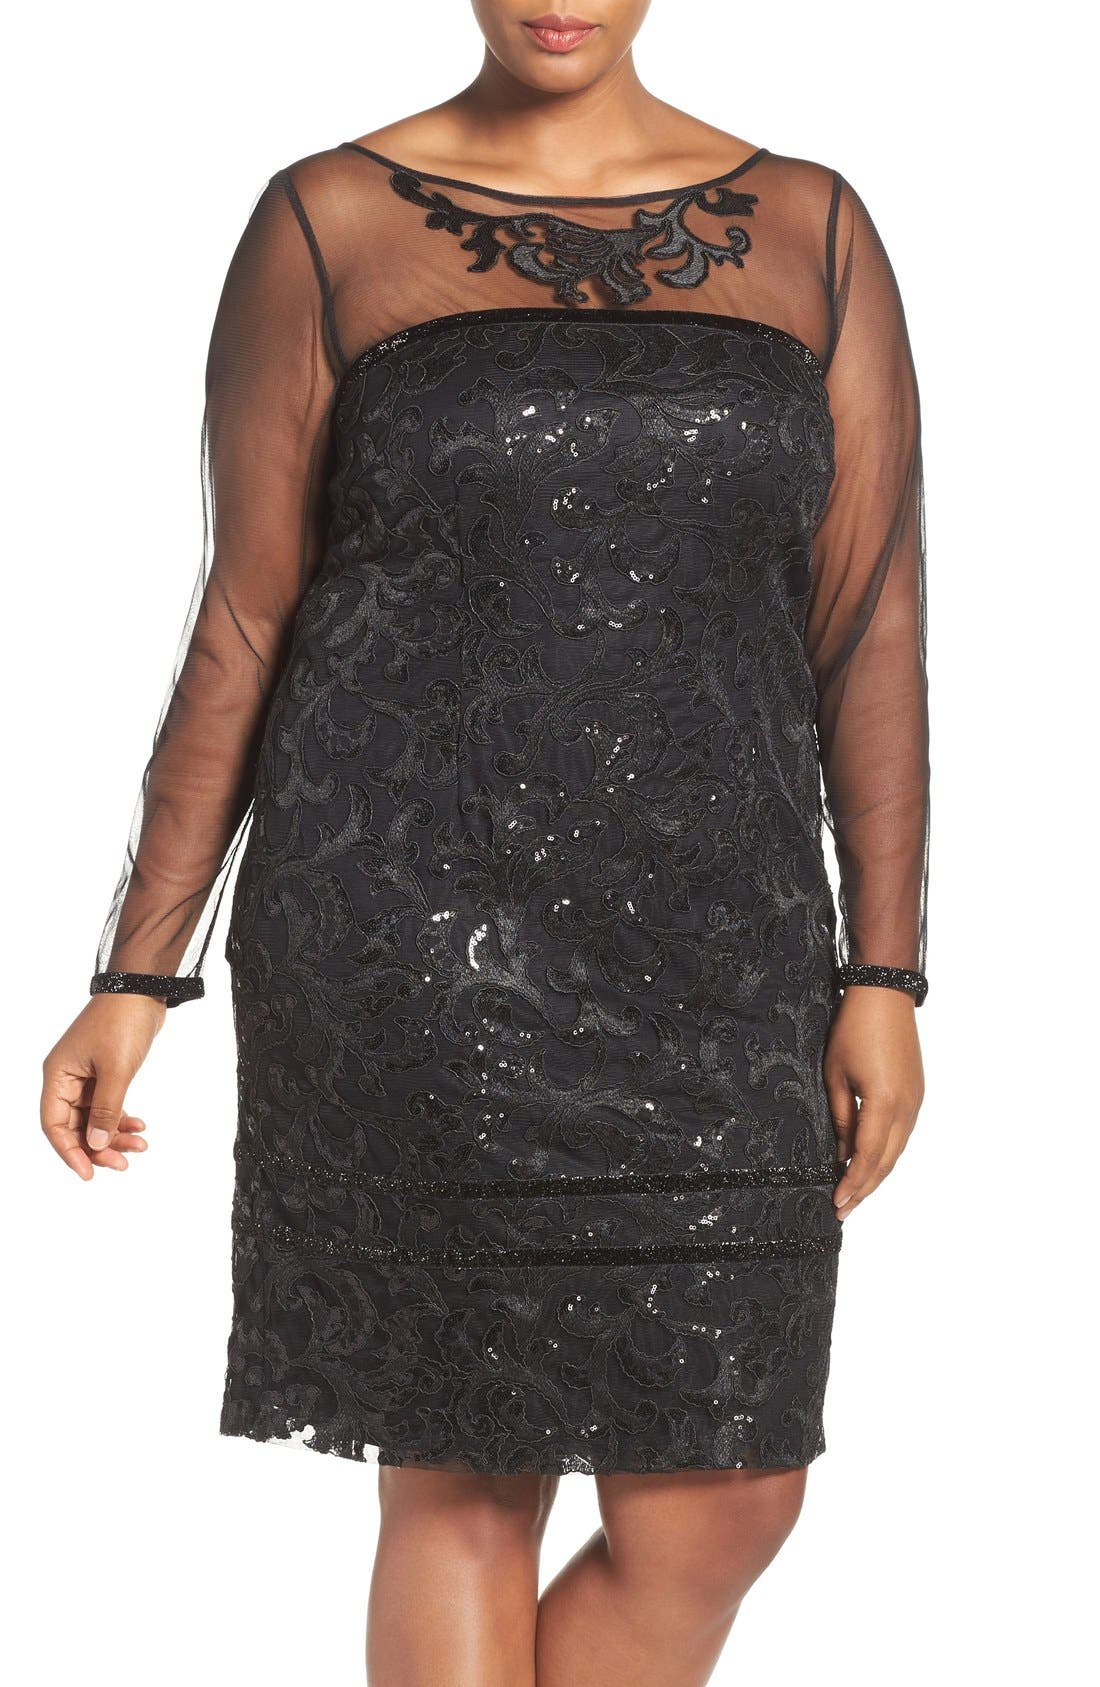 BRIANNA Sequin Lace Sheath Dress with Sheer Illusion